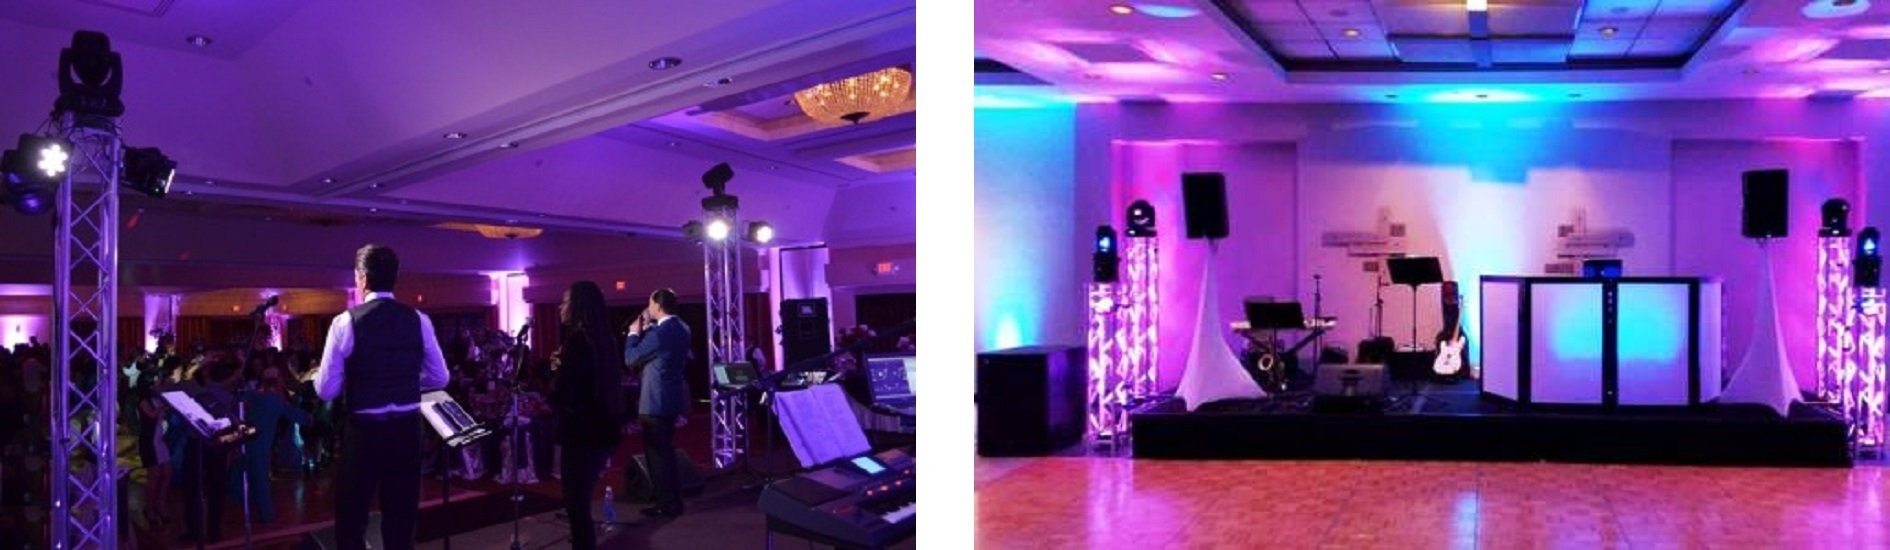 Stage Lighting, Lighting Truss, Band Lighting, Spot Lighting, Flood Lighting, Moving Heads, Scanners for Houston Wedding, Event, Concert, Live Band